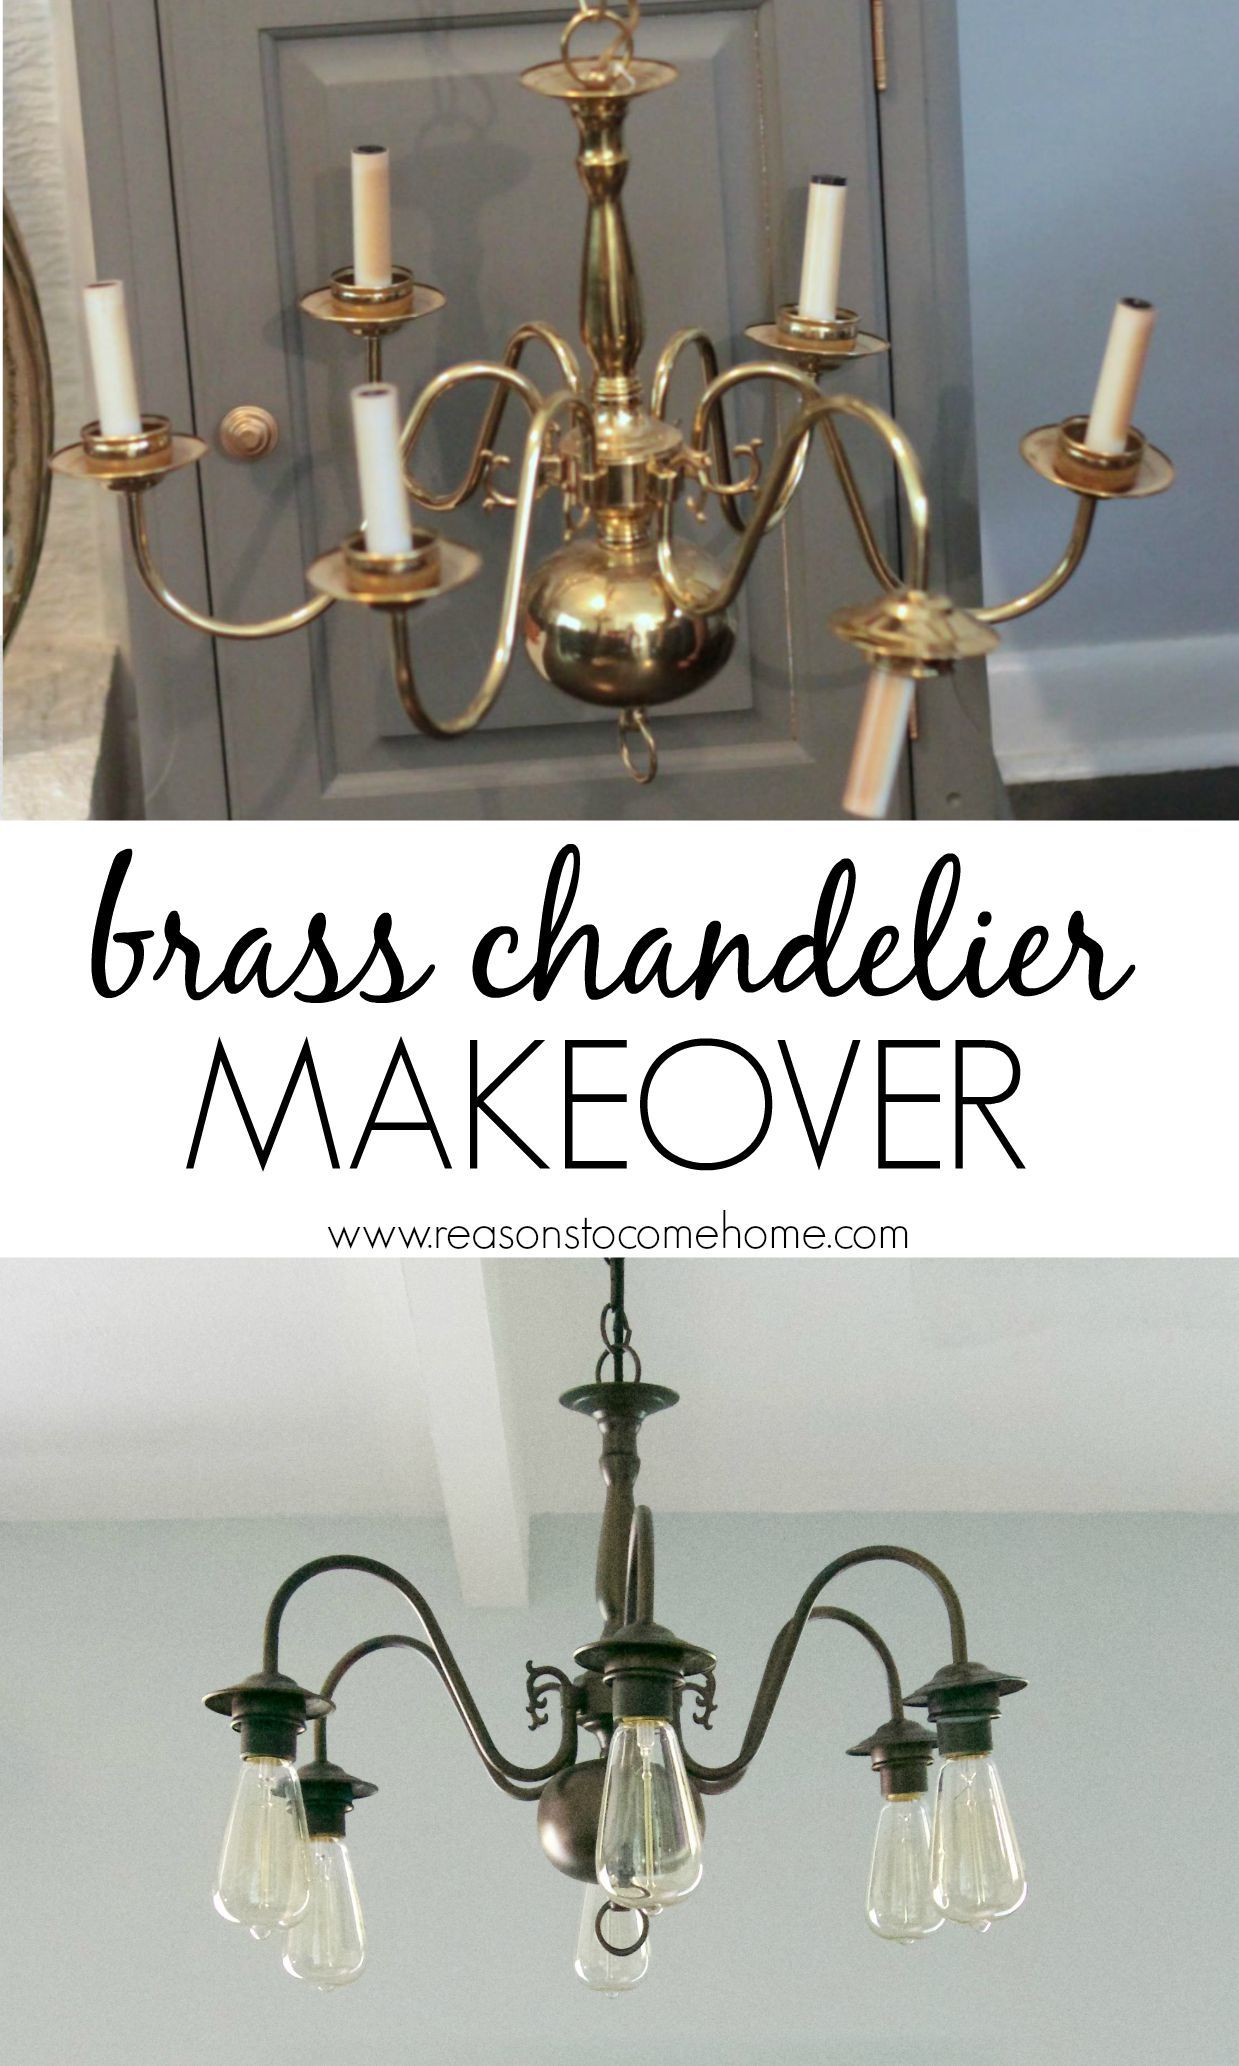 When I told Cory I wanted to attempt a chandelier makeover I got